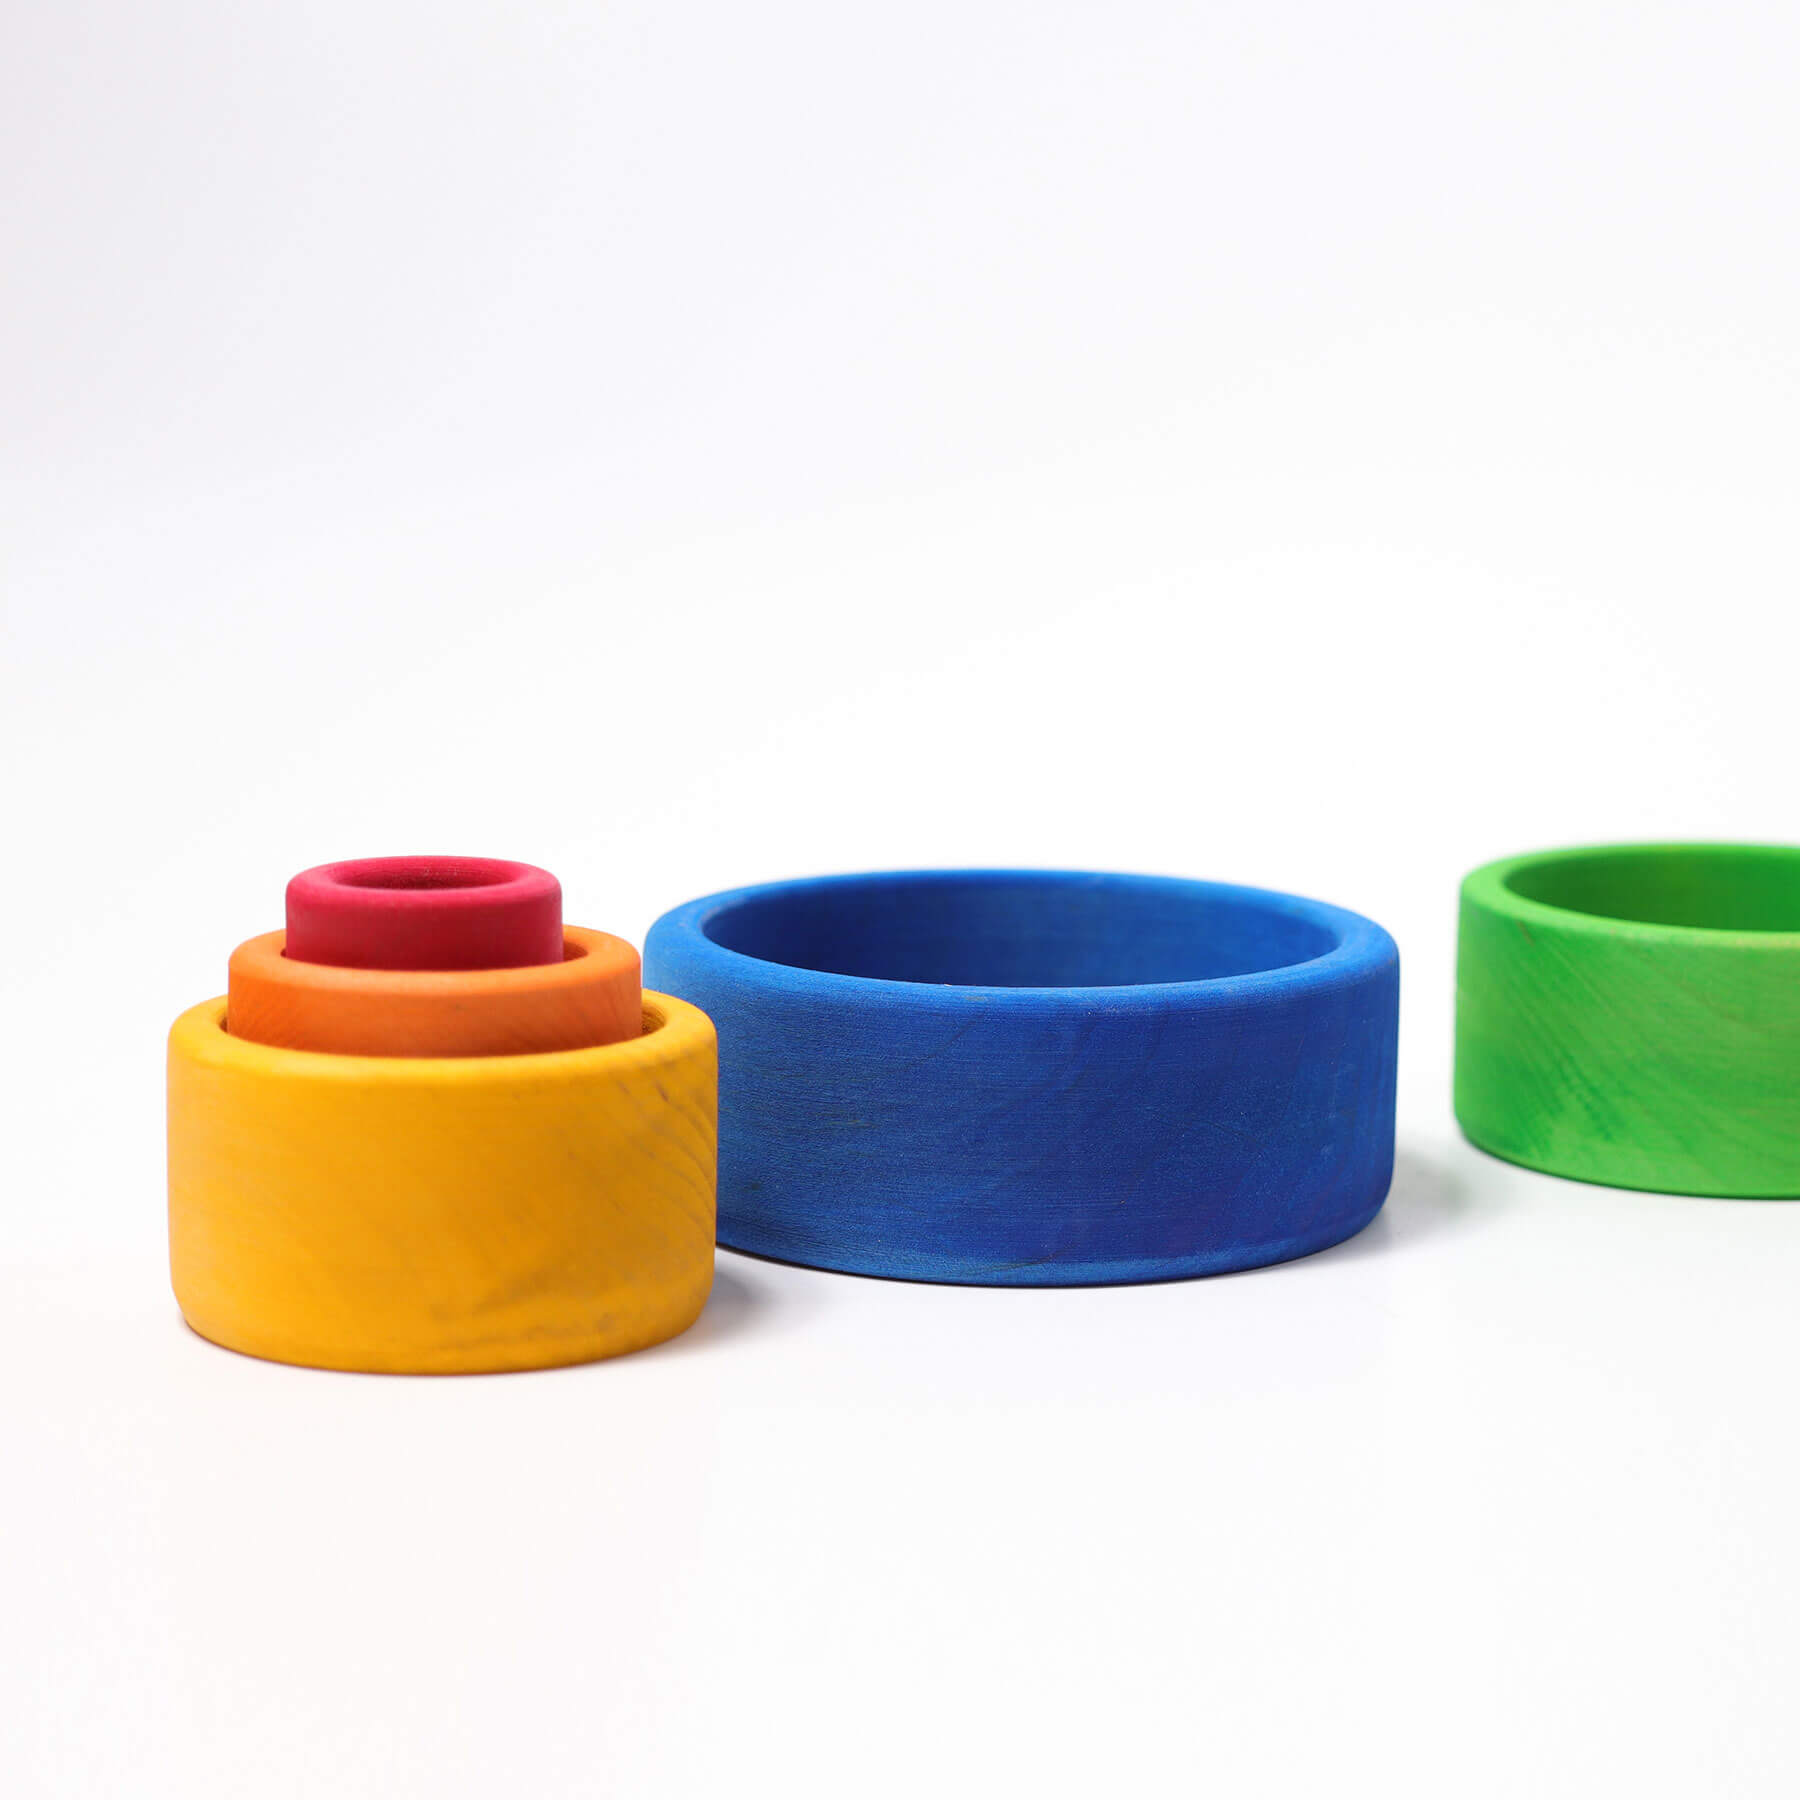 Grimms stacking bowls blue